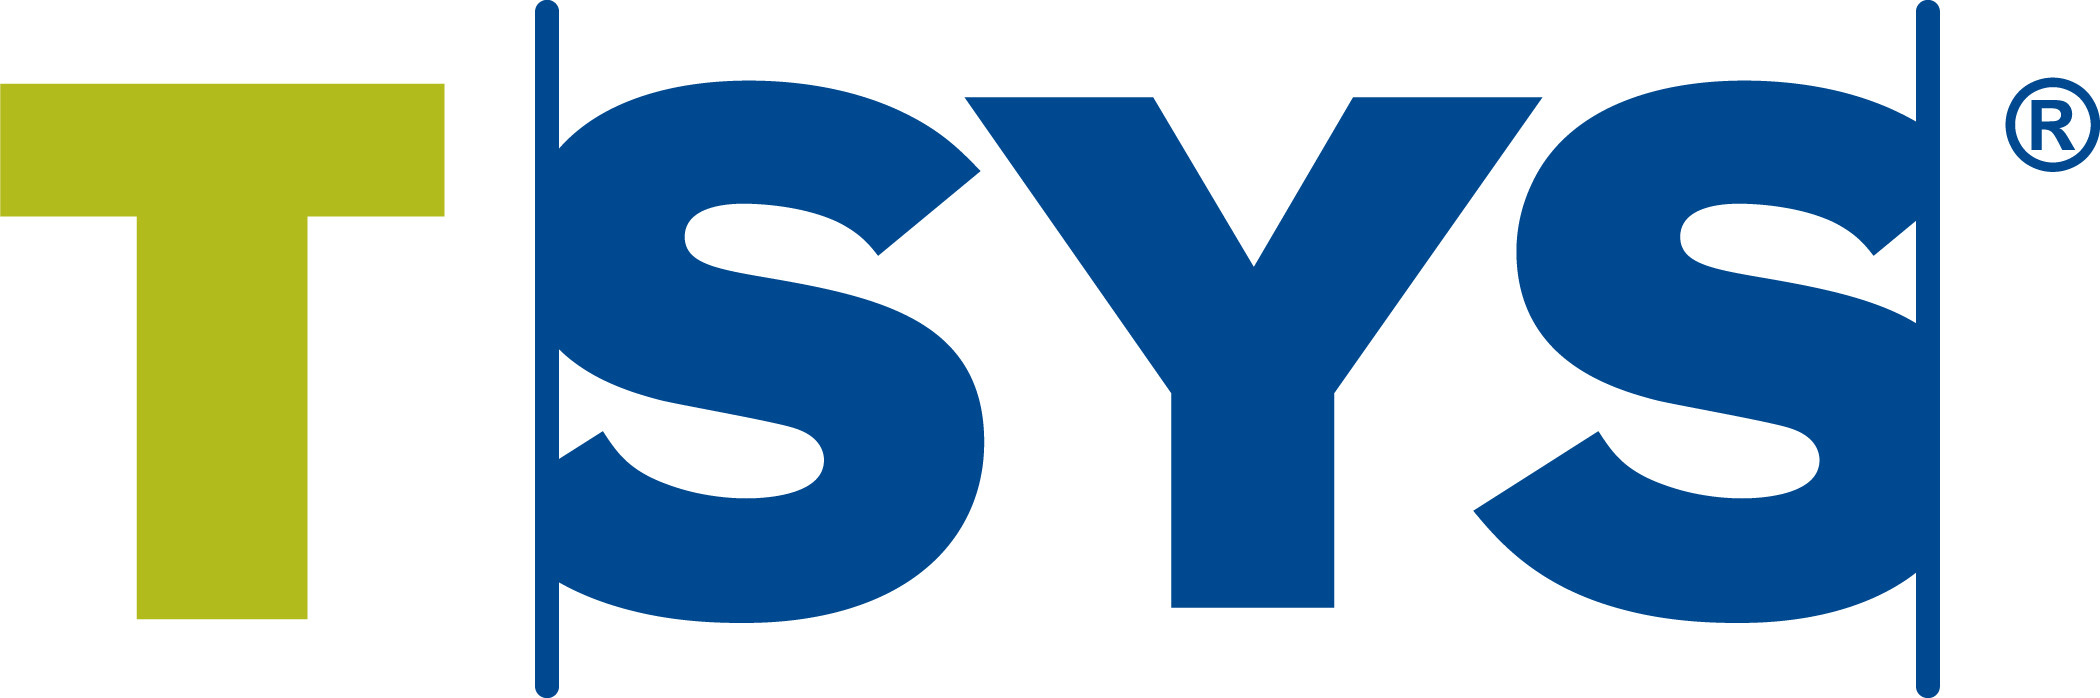 TSYS Completes Acquisition of NetSpend.